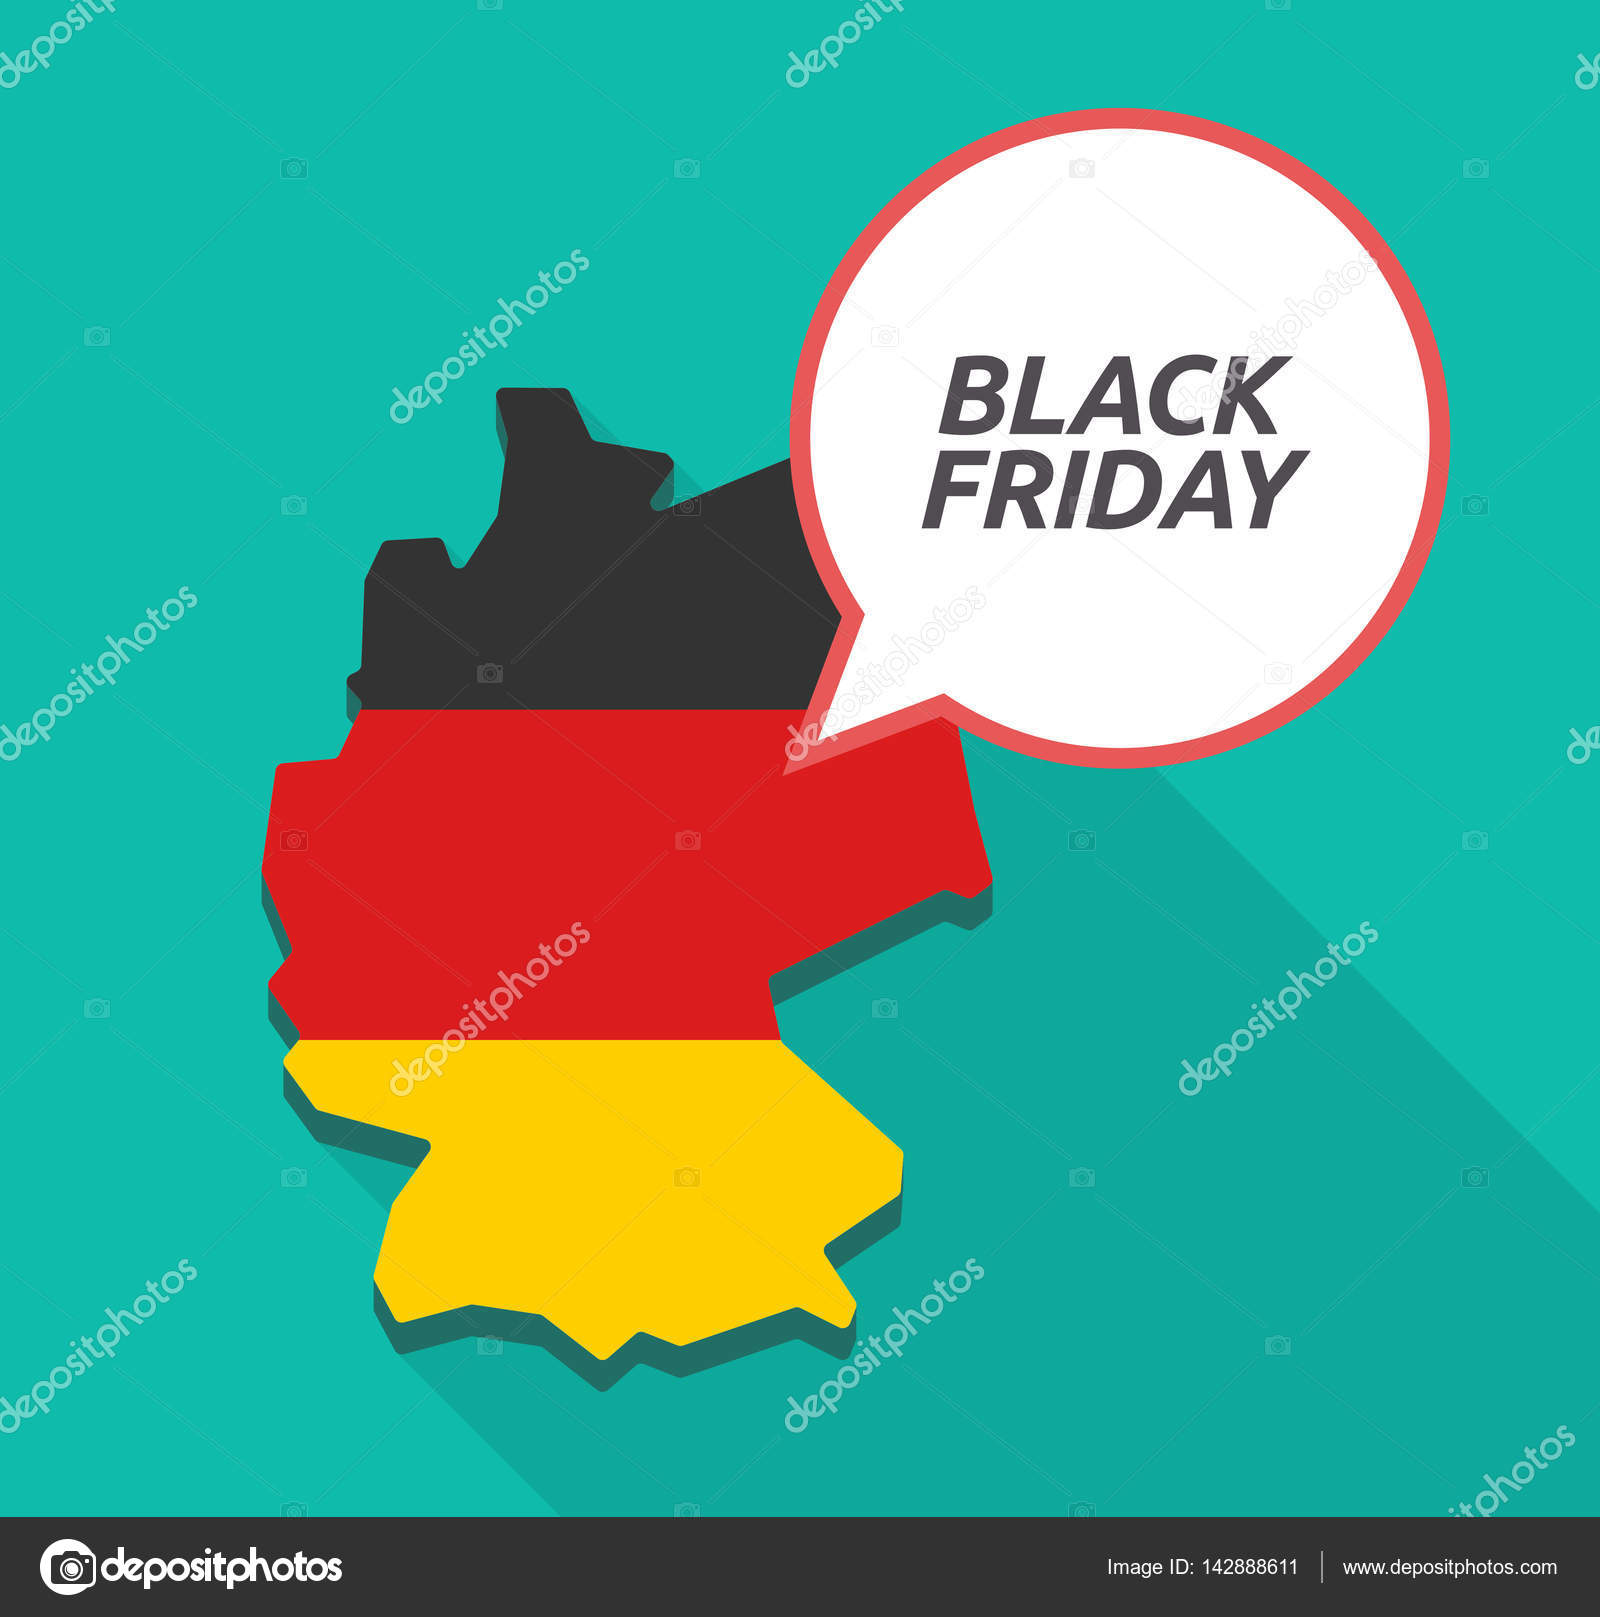 Blackfriday Germany Long Shadow Germany Map With The Text Black Friday Stock Vector